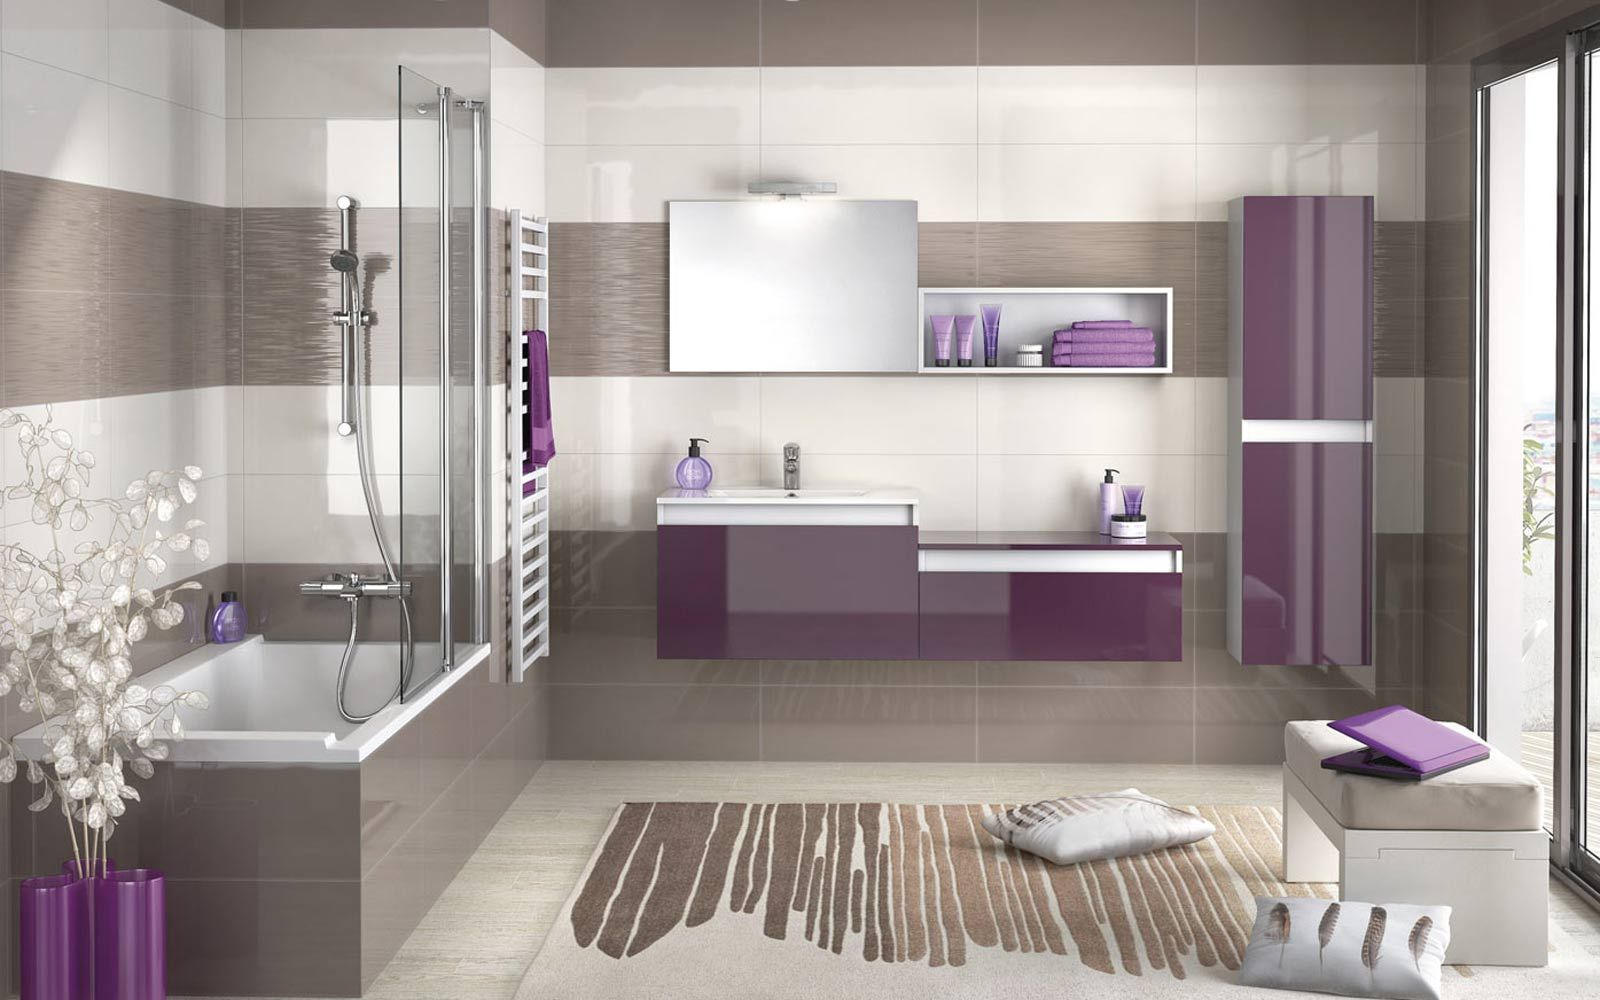 collection de salle de bain violette delpha d motion espace aubade d co salle d bain. Black Bedroom Furniture Sets. Home Design Ideas